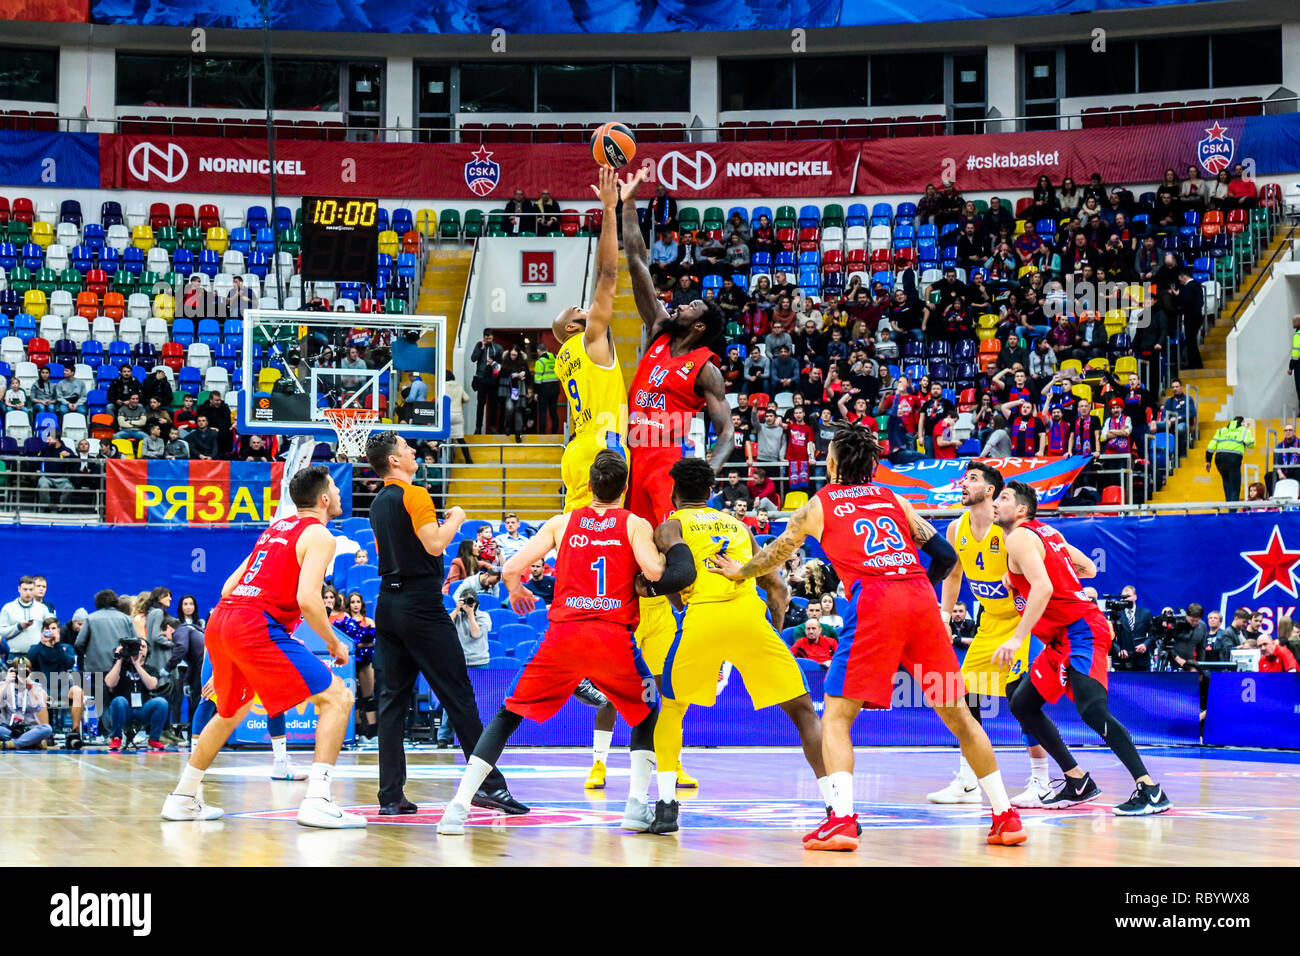 The opening tip of the Maccabi Tel Aviv and CSKA Moscow match in Round 18 of the Turkish Airlines Euroleague game of the 2018-2019 season.  Maccabi Tel Aviv beat CSKA Moscow, 93-76. - Stock Image